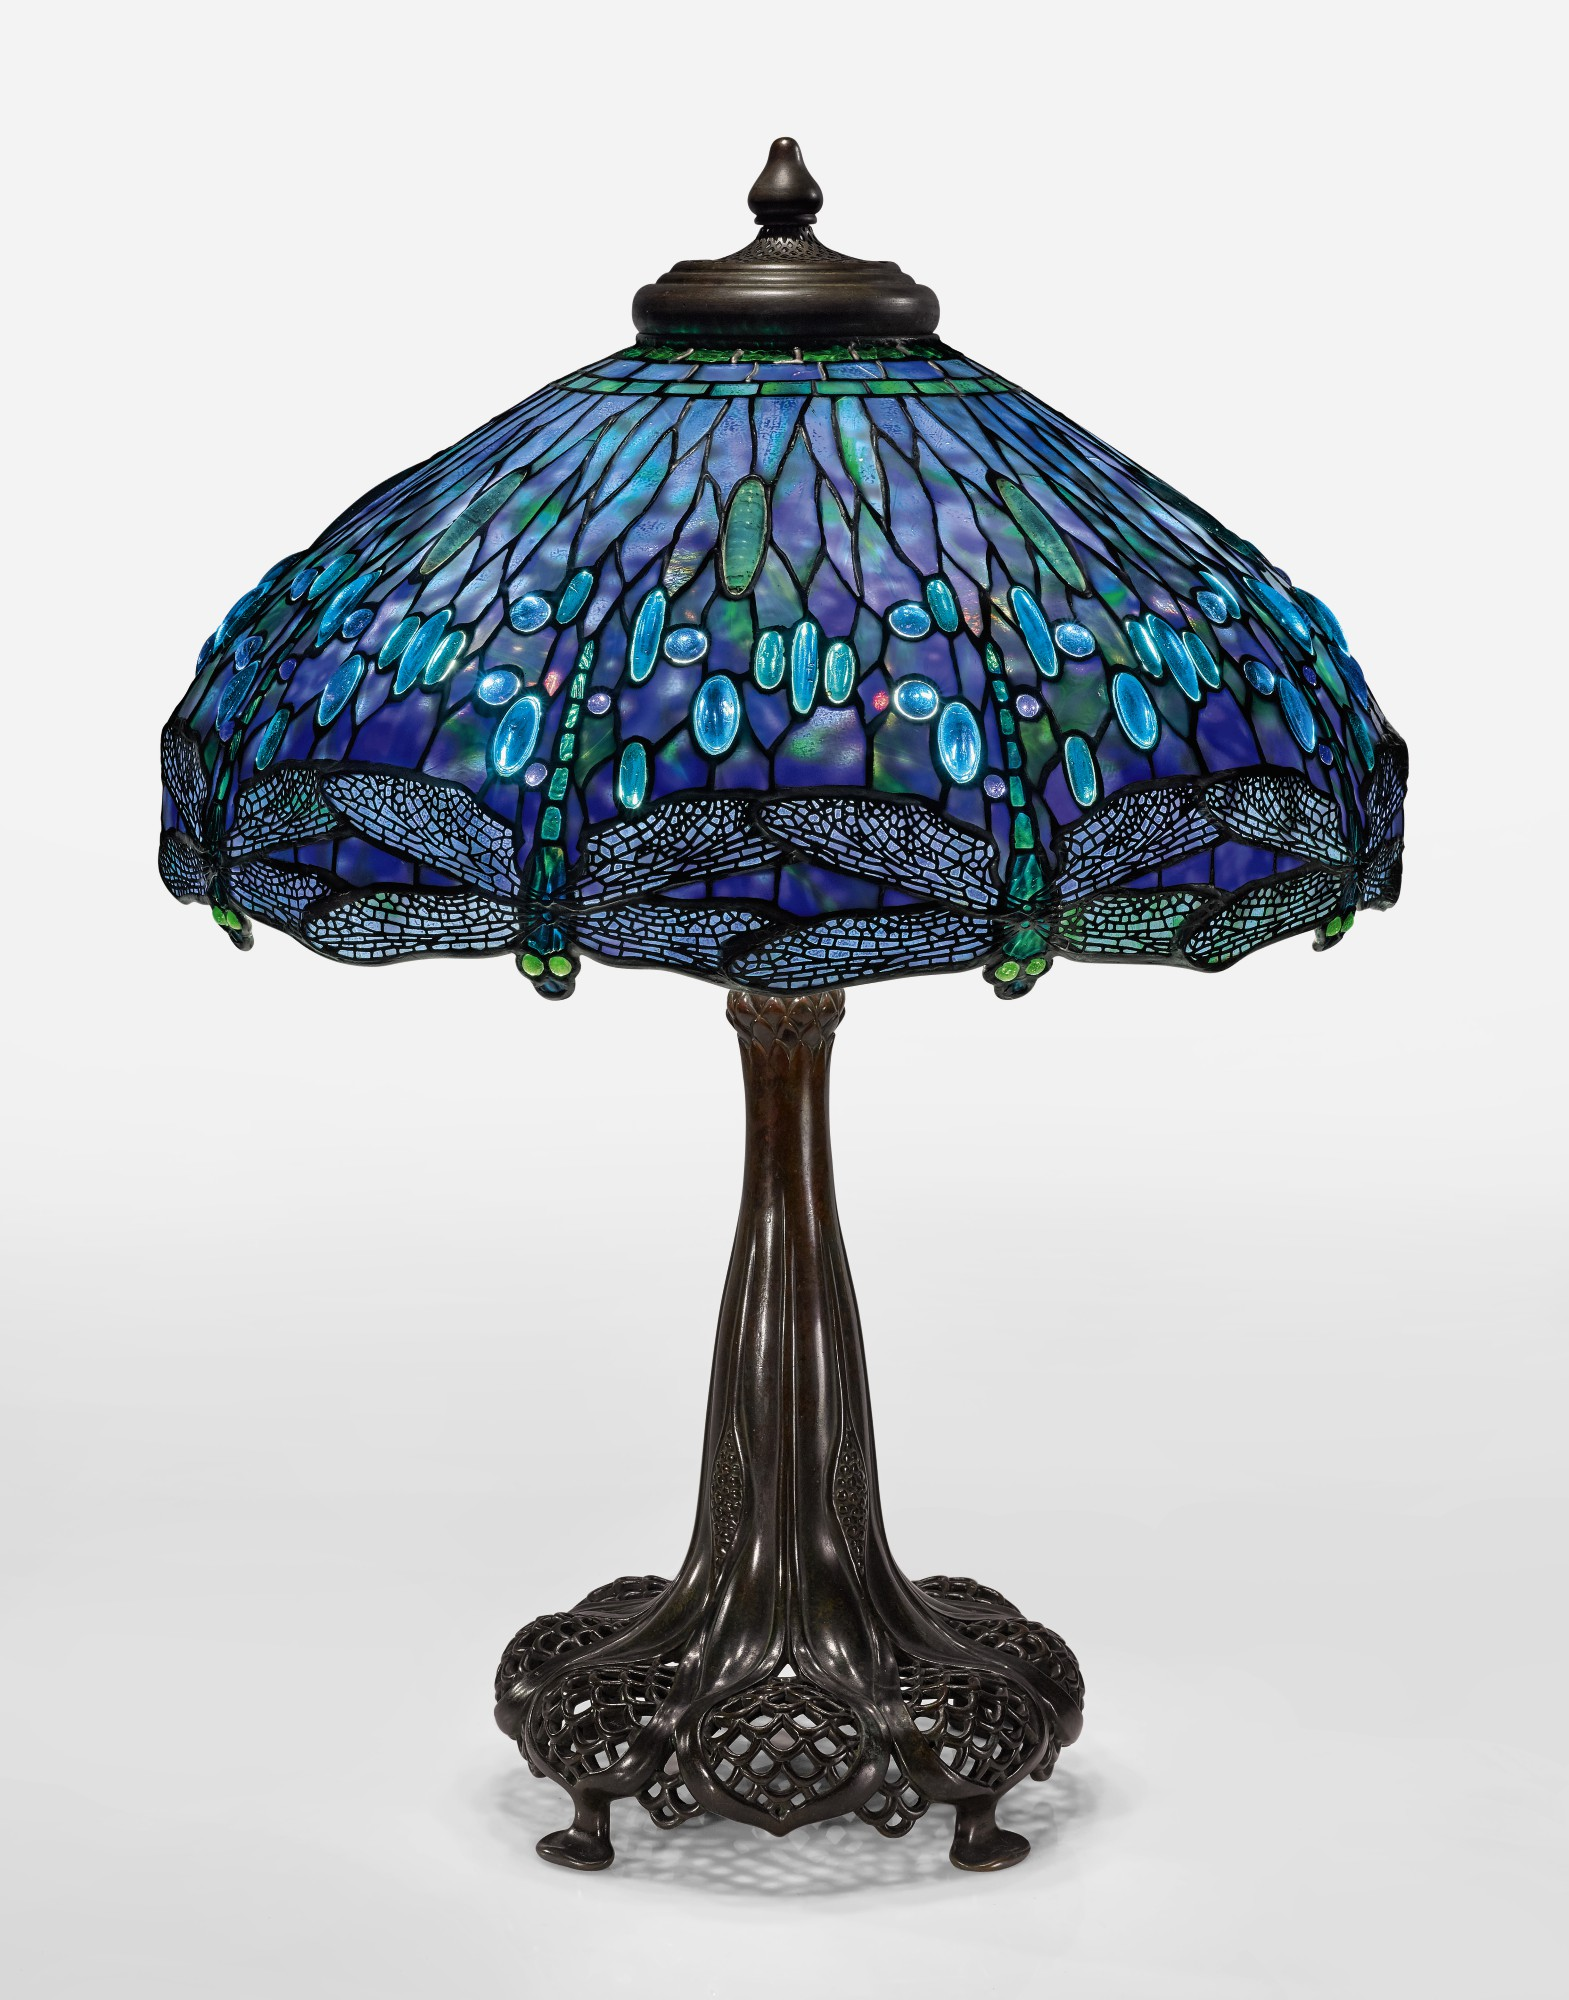 Picture of: Tiffany Studios An Important Dragonfly Table Lamp Dreaming In Glass Masterworks By Tiffany Studios 20th Century Design Sotheby S